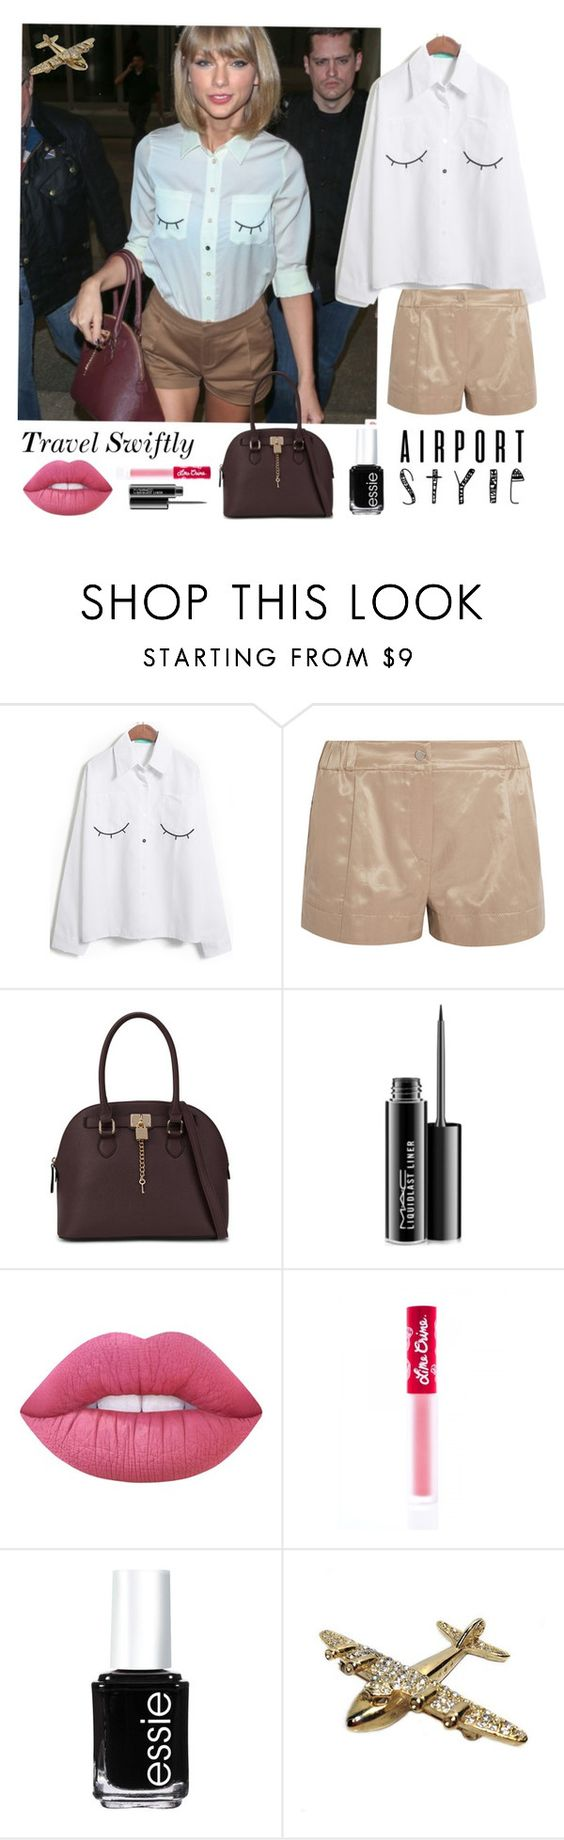 """Airport Style:Taylor Swift"" by sojazzed ❤ liked on Polyvore featuring Kenzo, ALDO, MAC Cosmetics, Lime Crime, Essie, taylorswift, Sheinside and airportstyle"